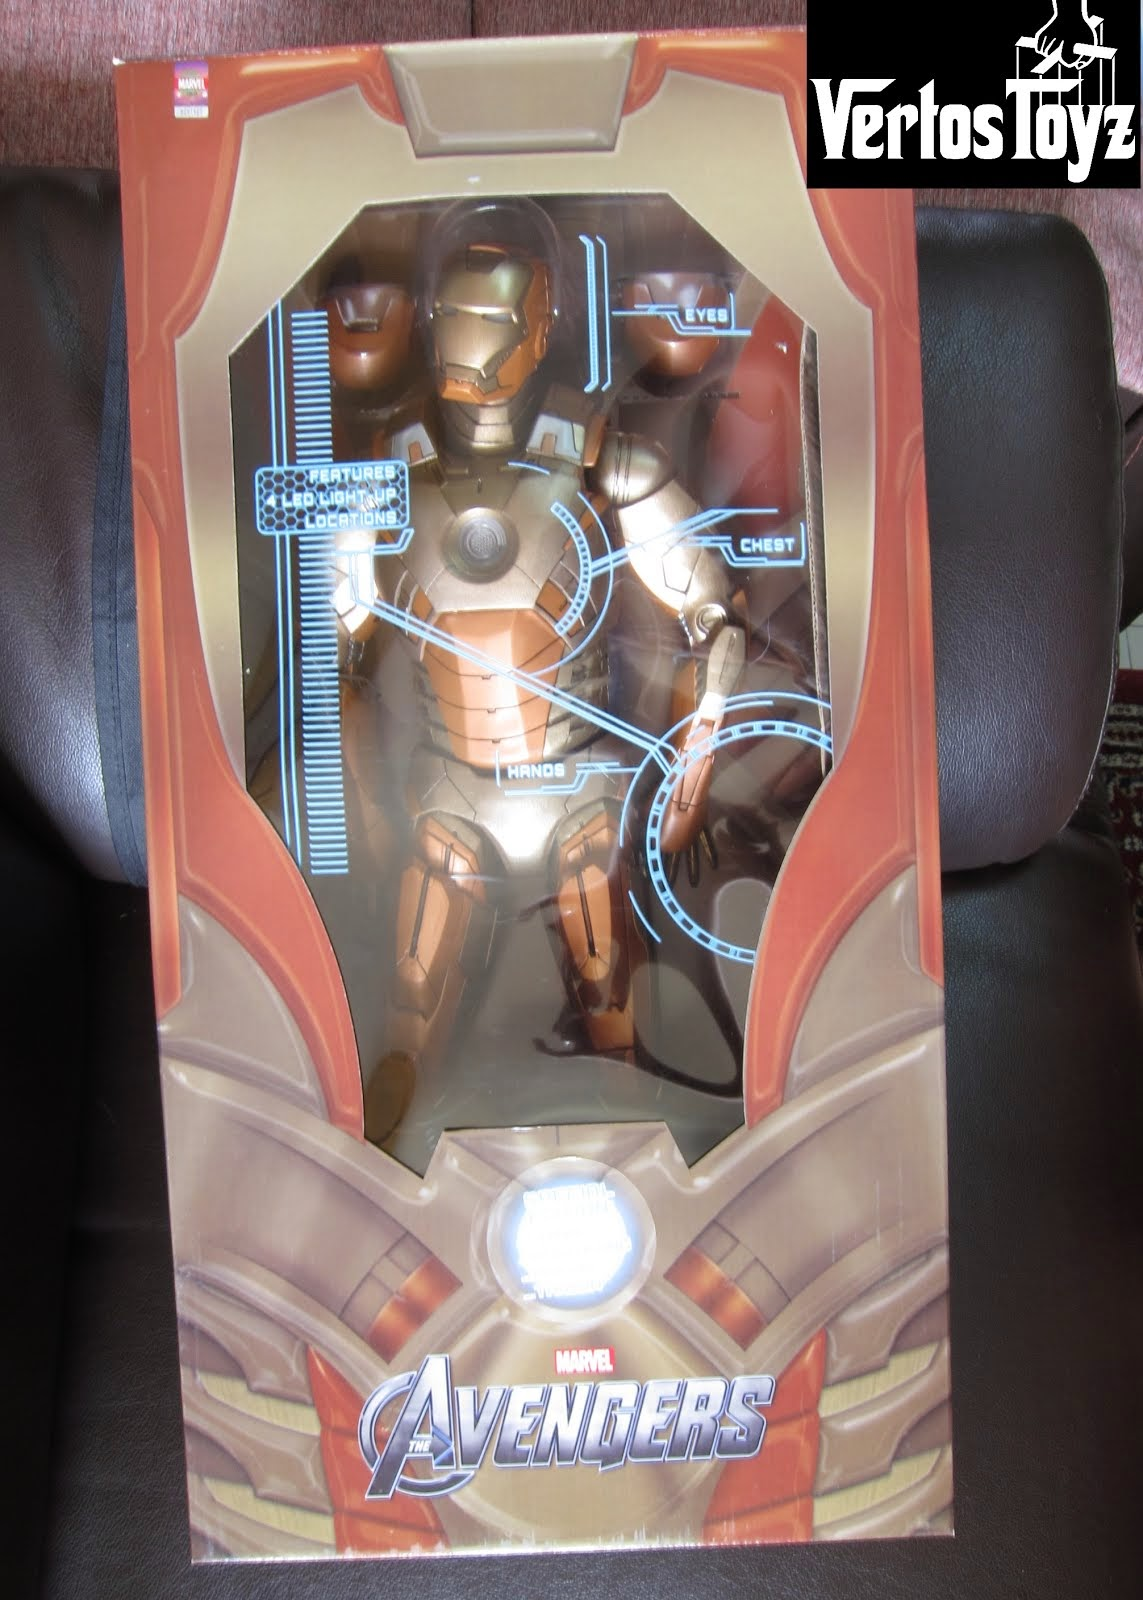 Ready Stock 1/4 Scale Neca Midas